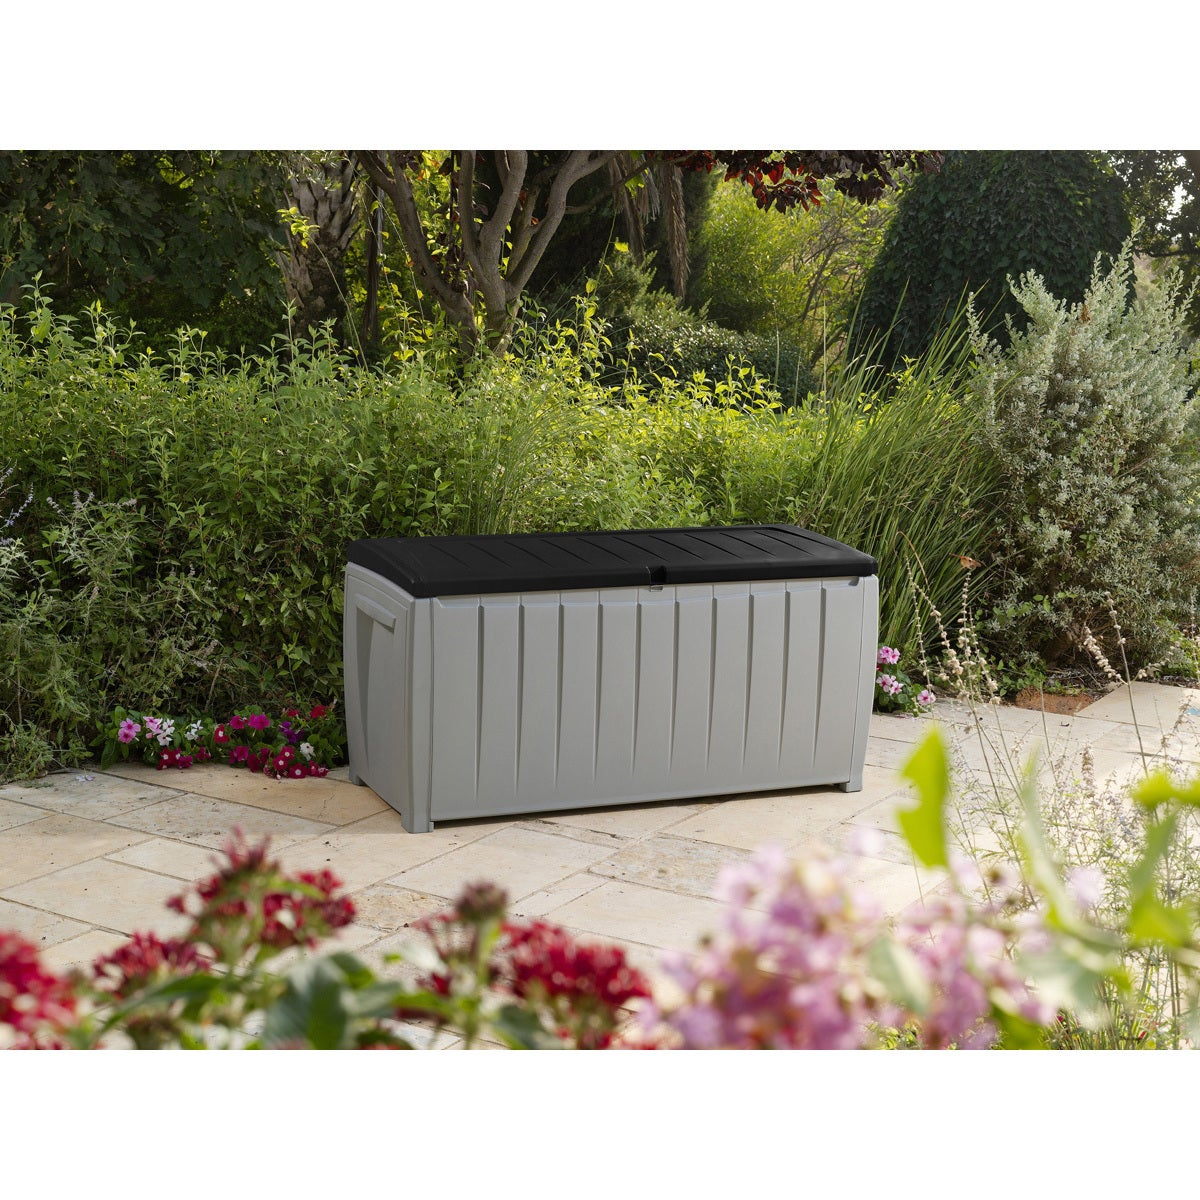 Keter Novel 90 Gallon Black And Grey Plastic Deck Storage Box   Free  Shipping Today   Overstock   19140500